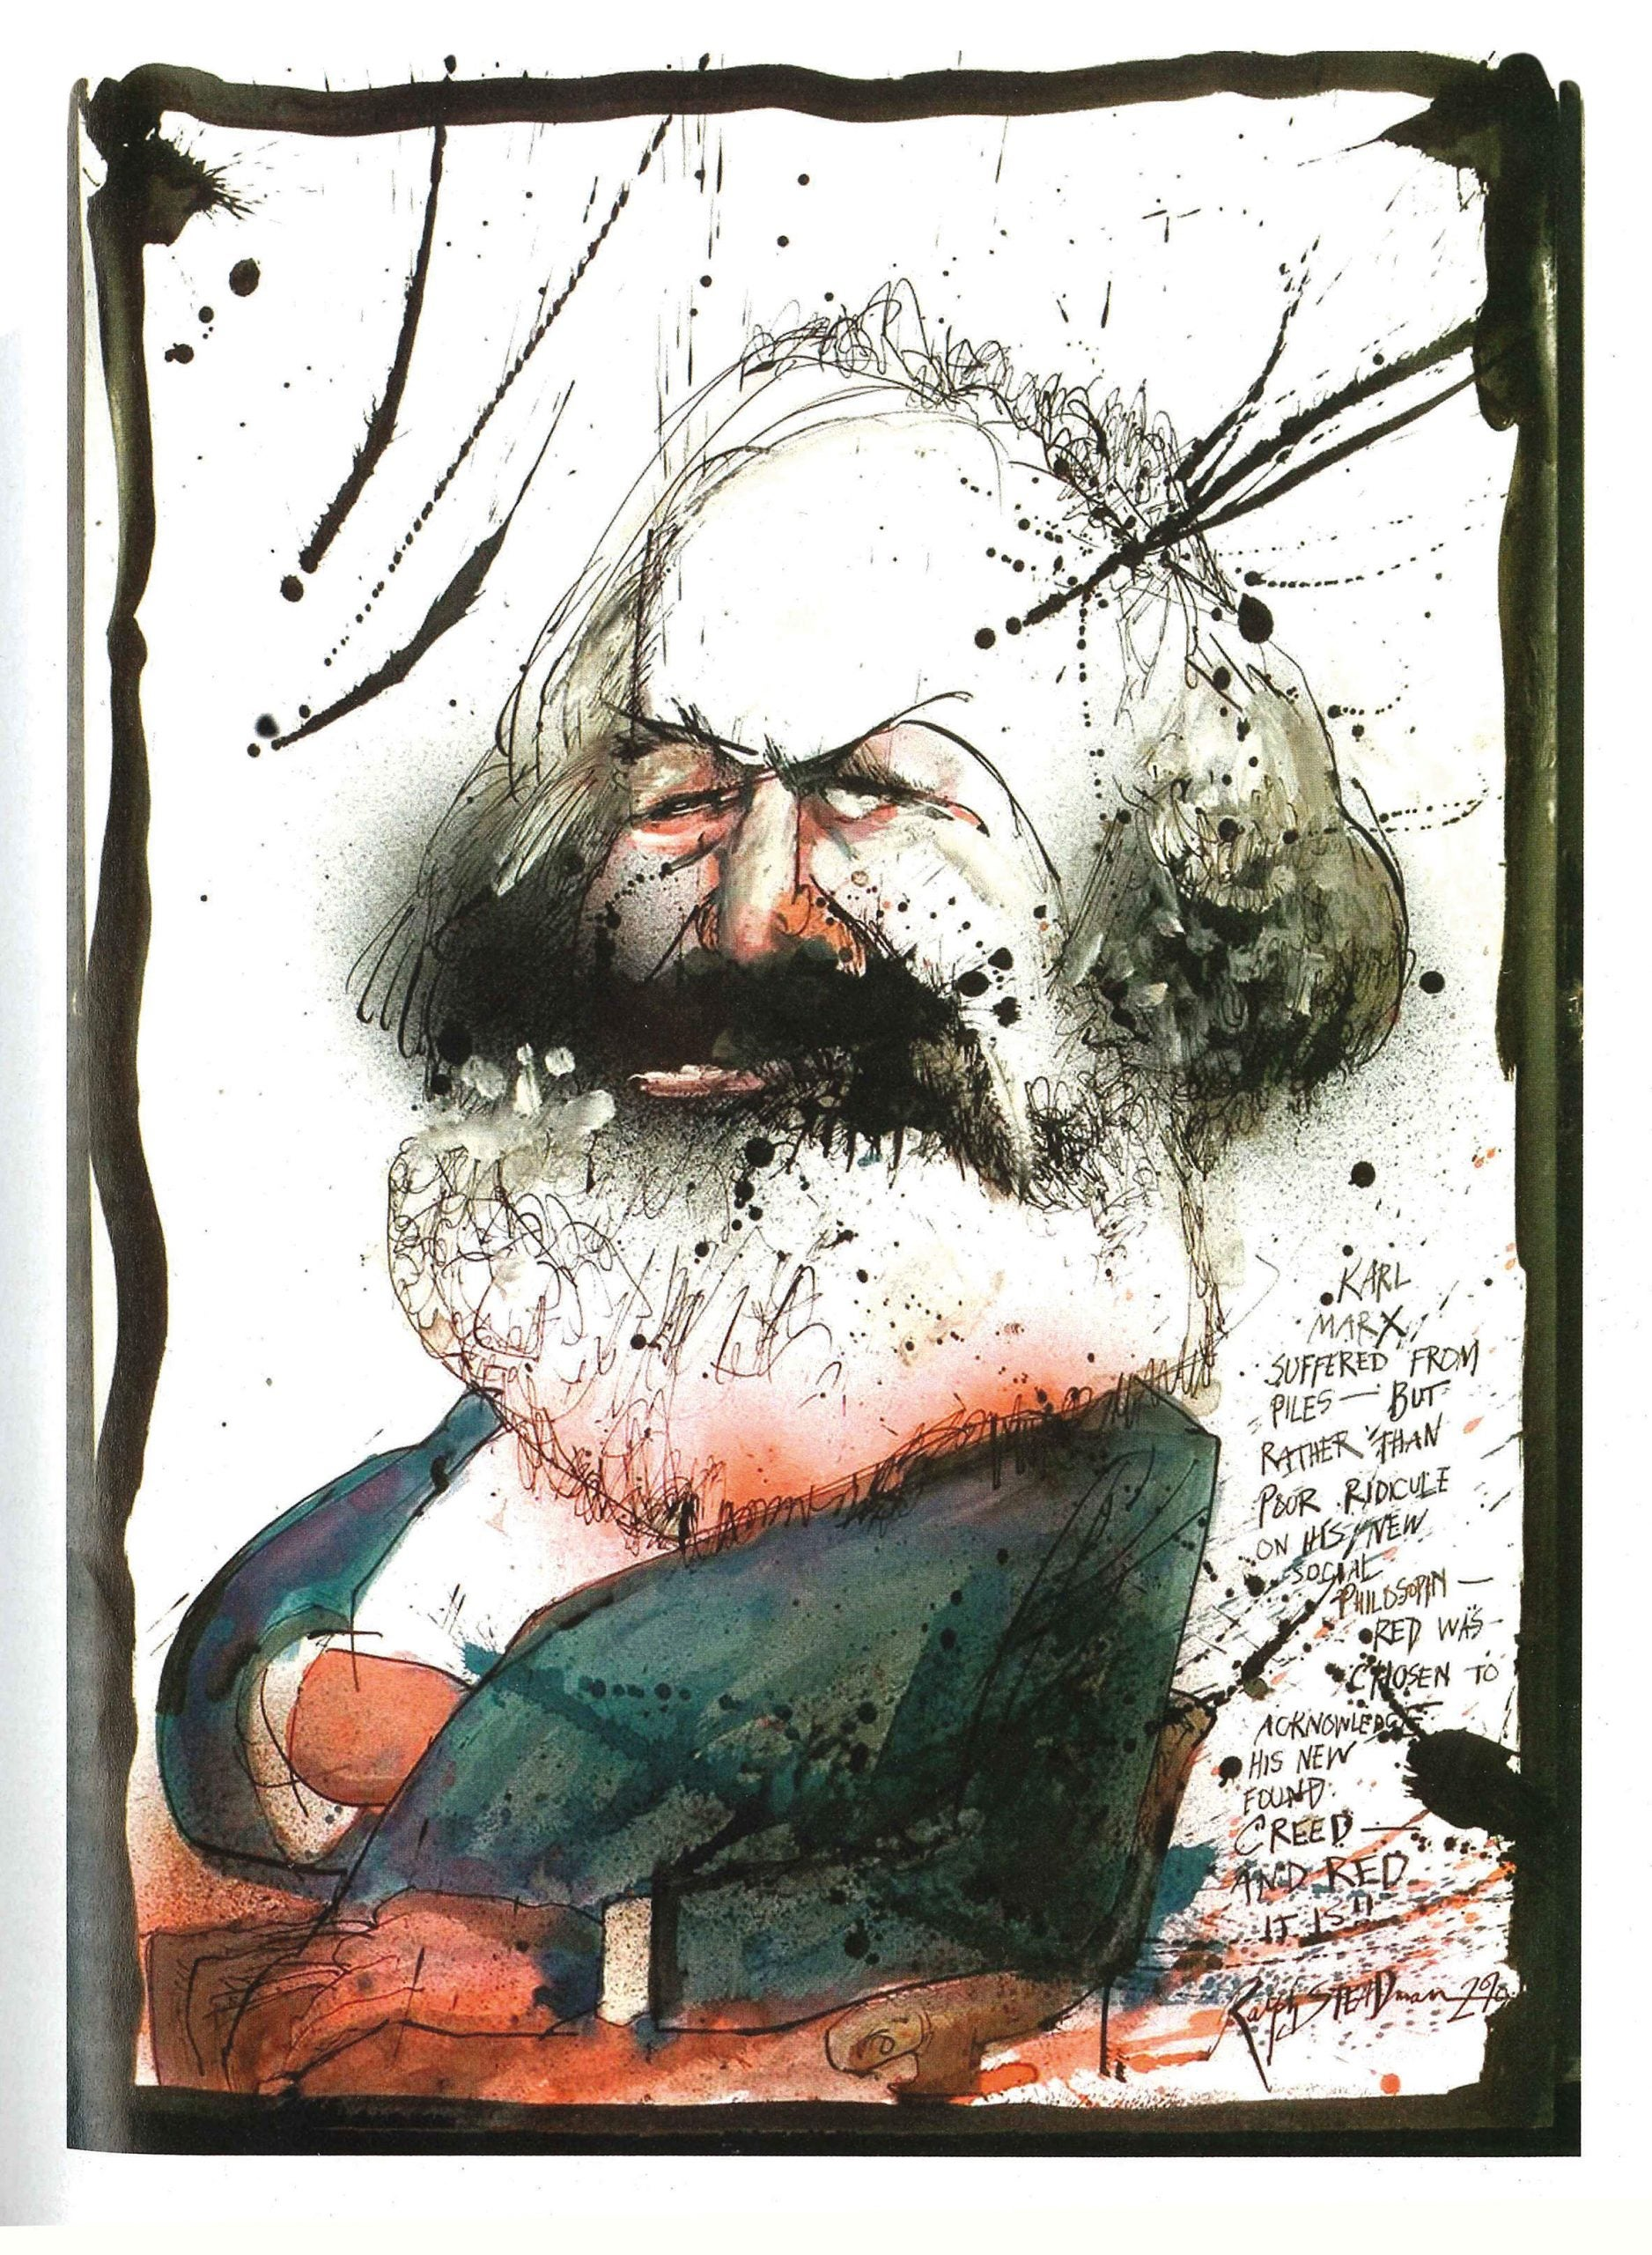 The conflicted legacy of Karl Marx